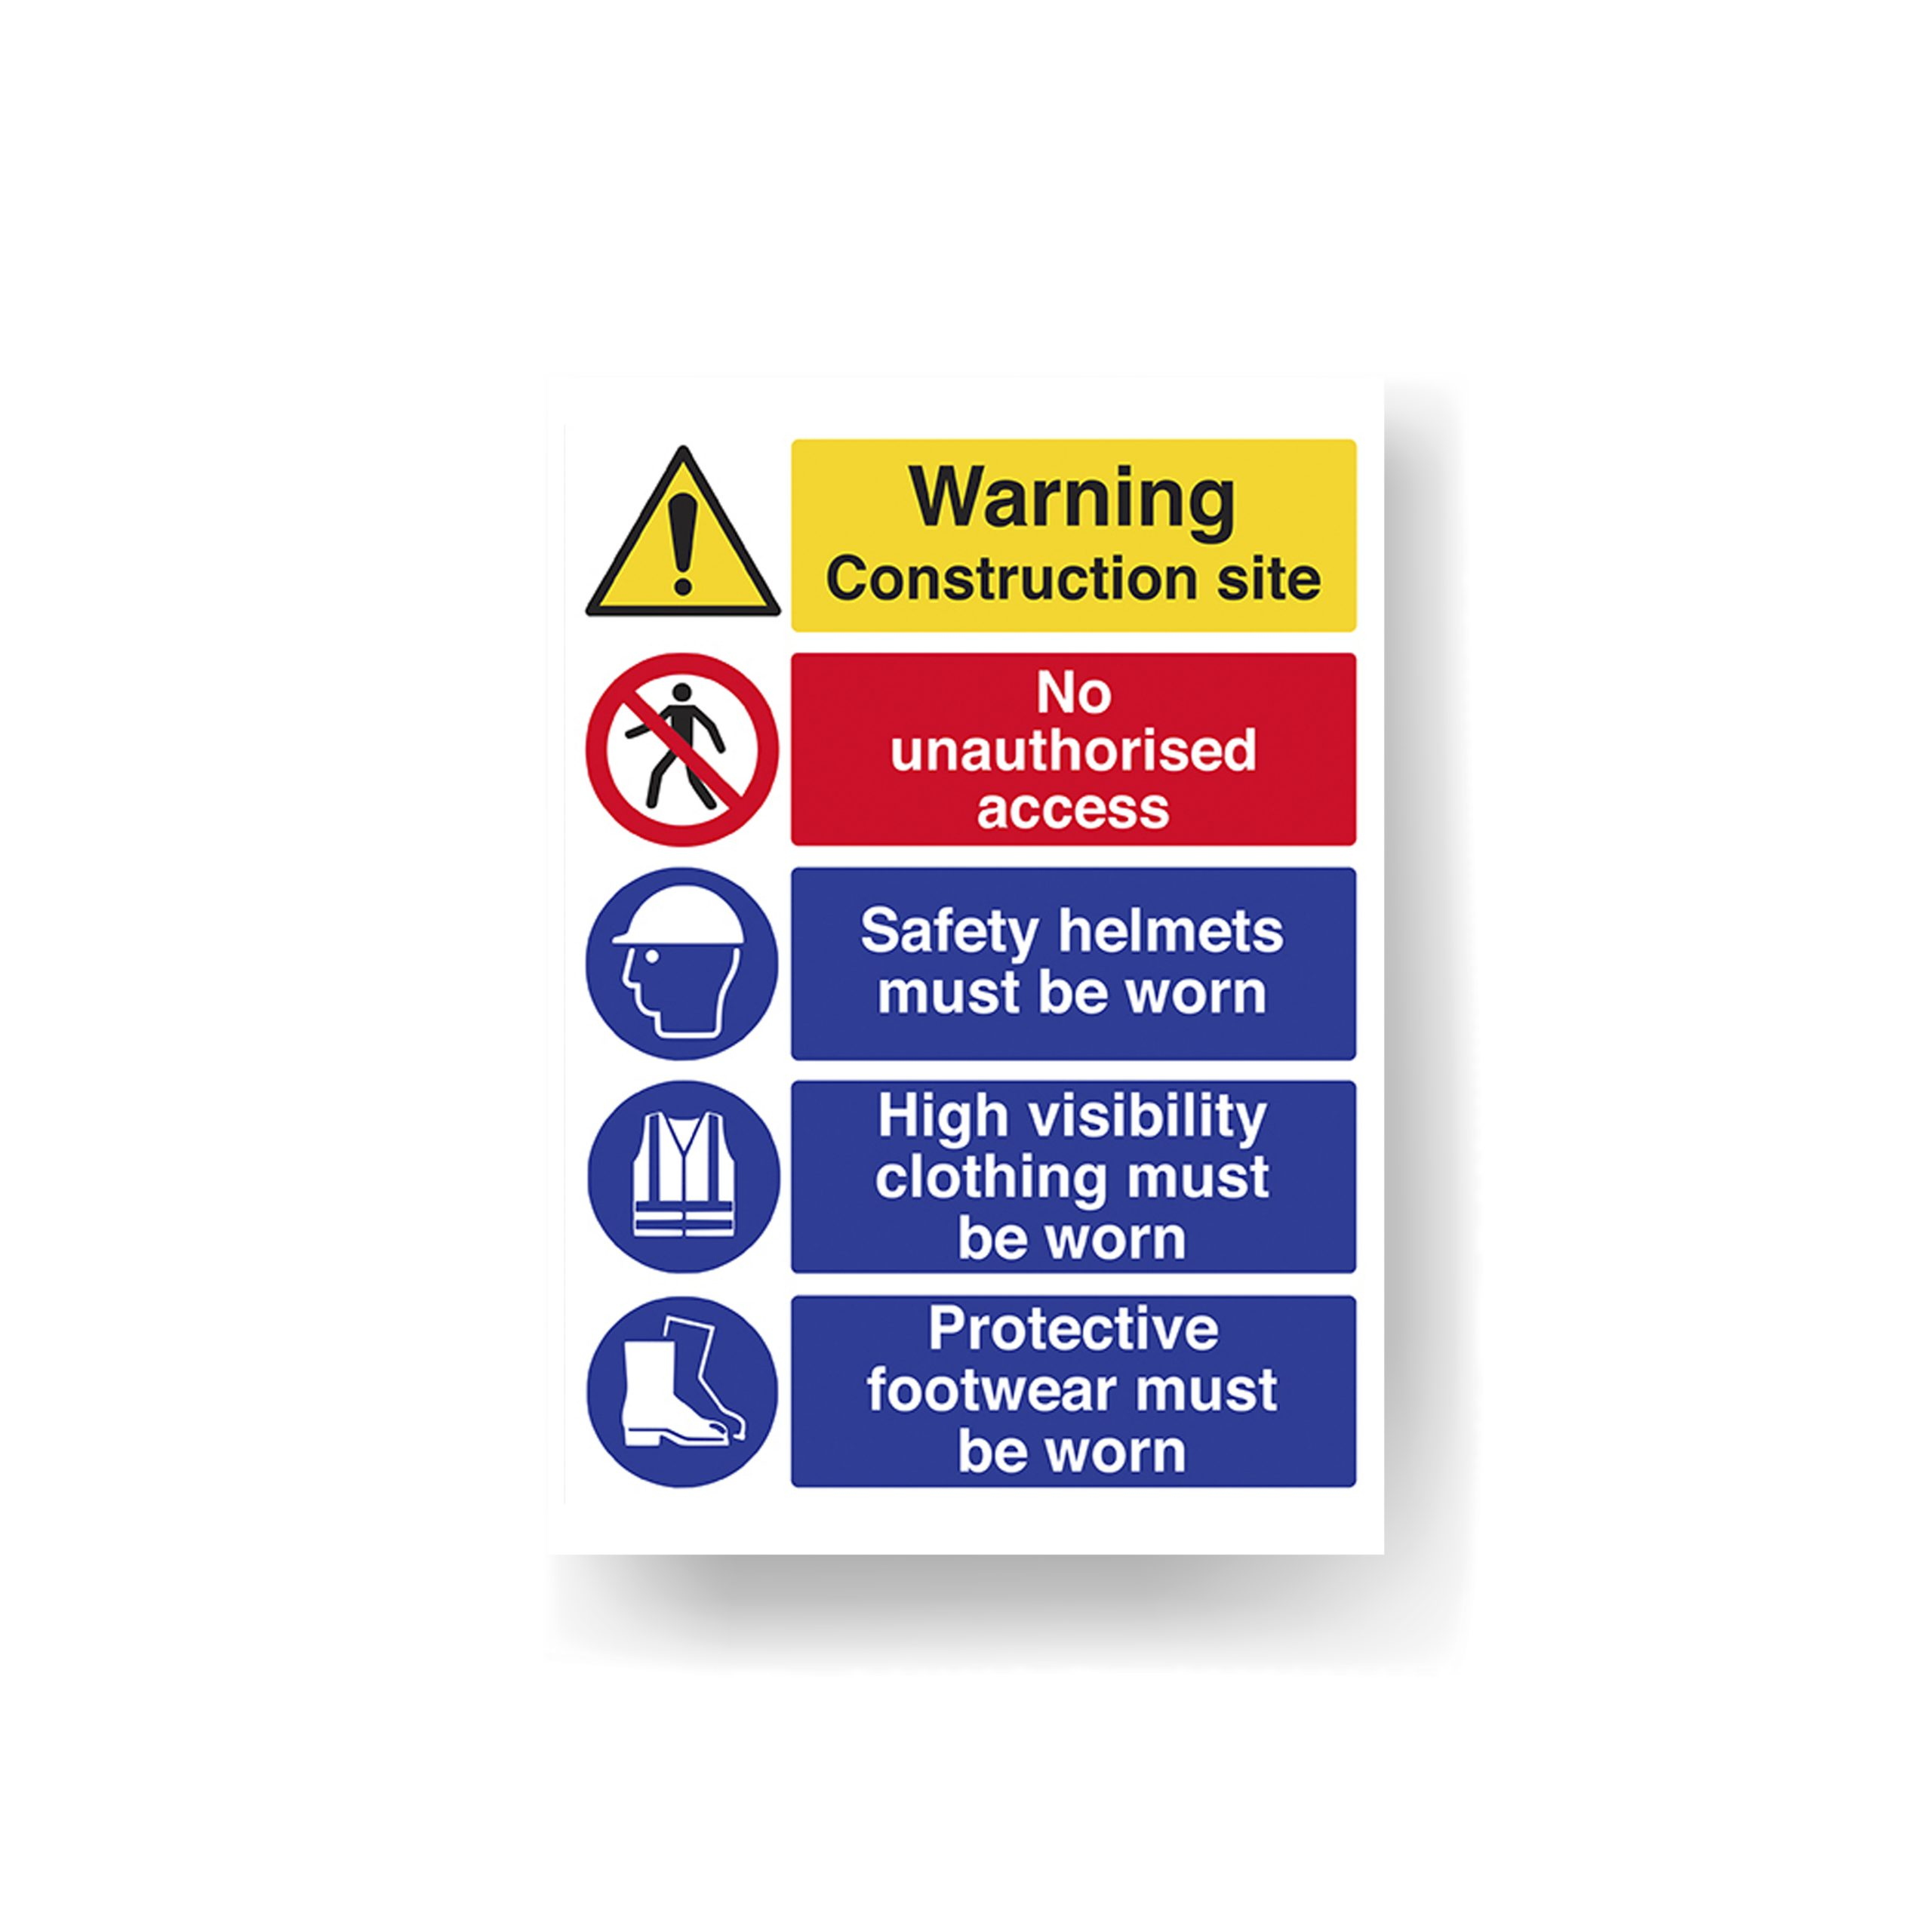 Building site construction safety sign